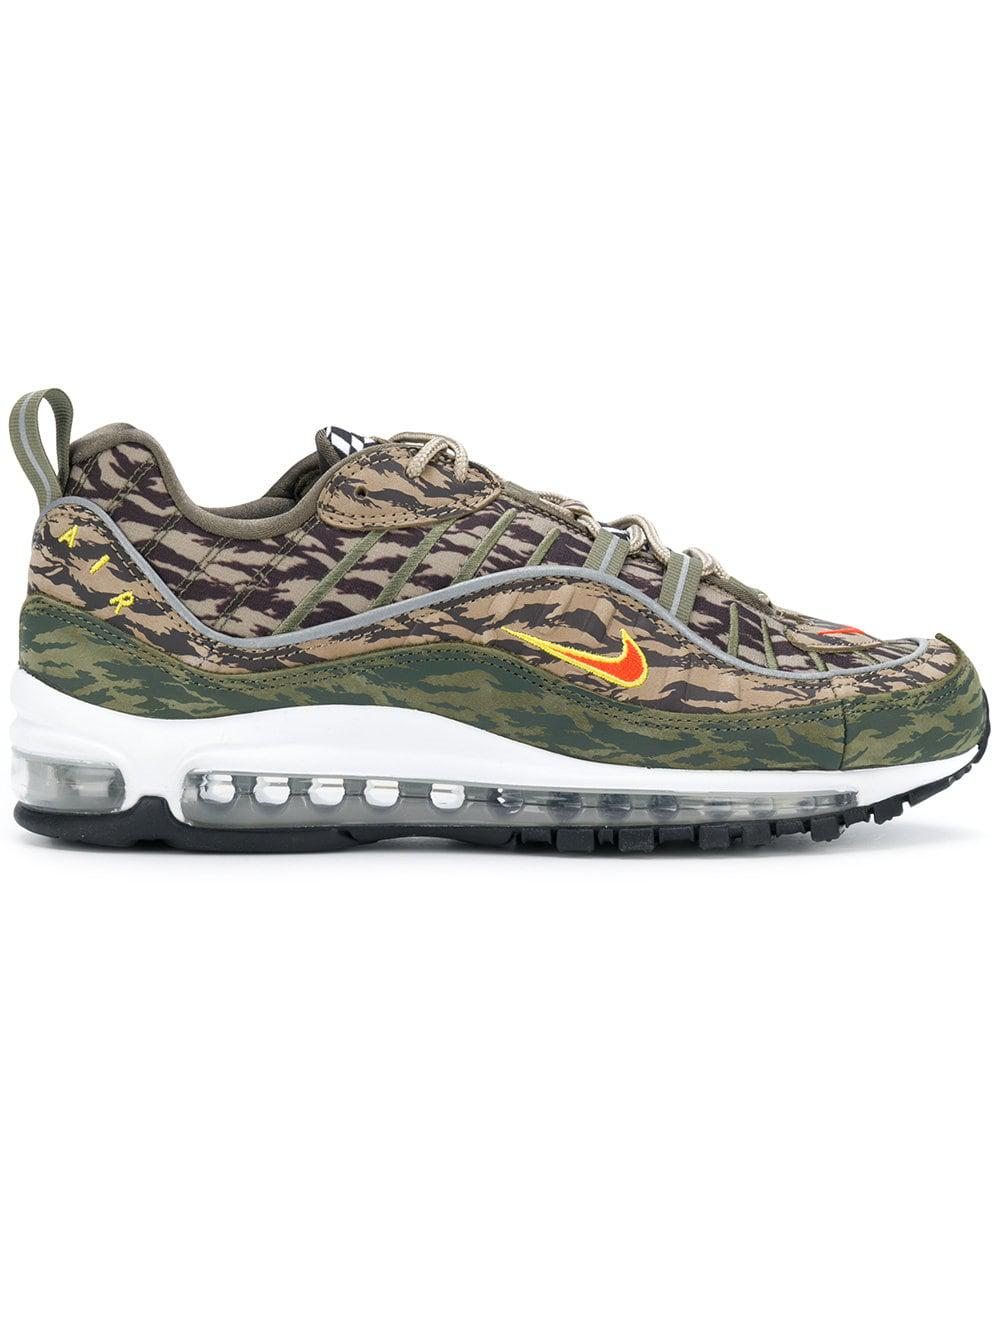 10fa3ae1ffe3 Nike Air Max 98 Sneakers in Green for Men - Lyst